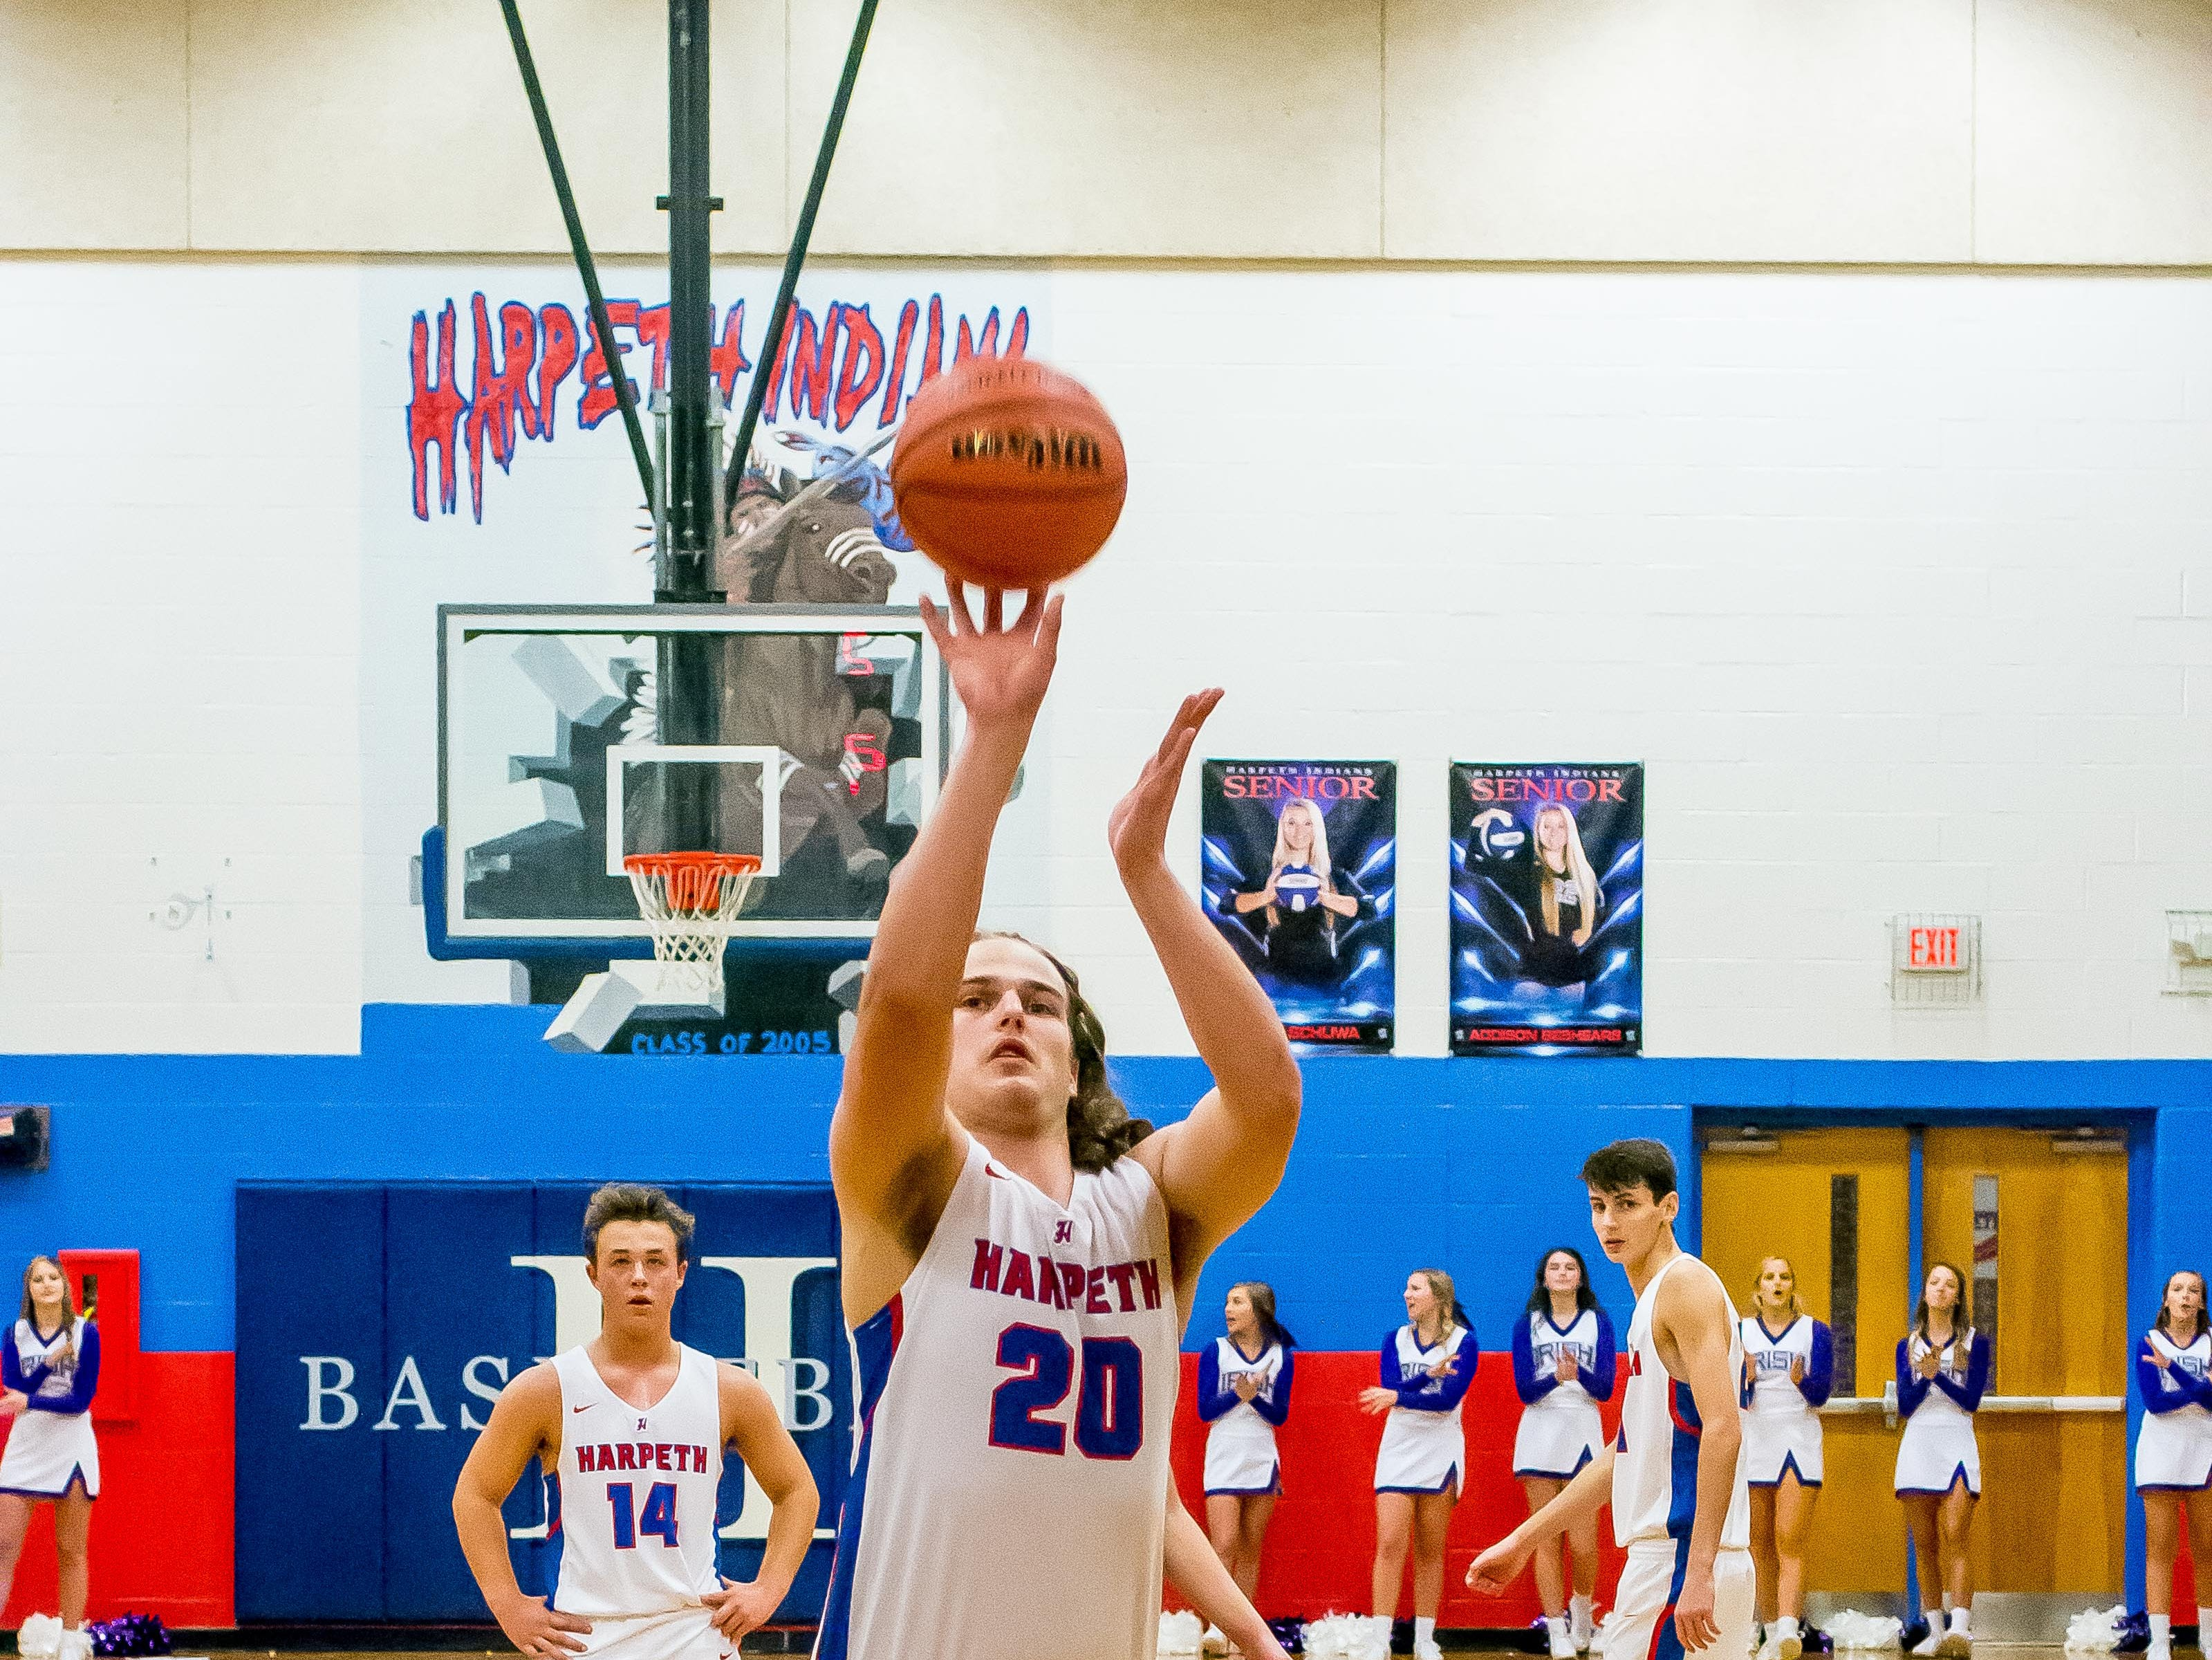 Harpeth senior Chase Taylor at the line for two.